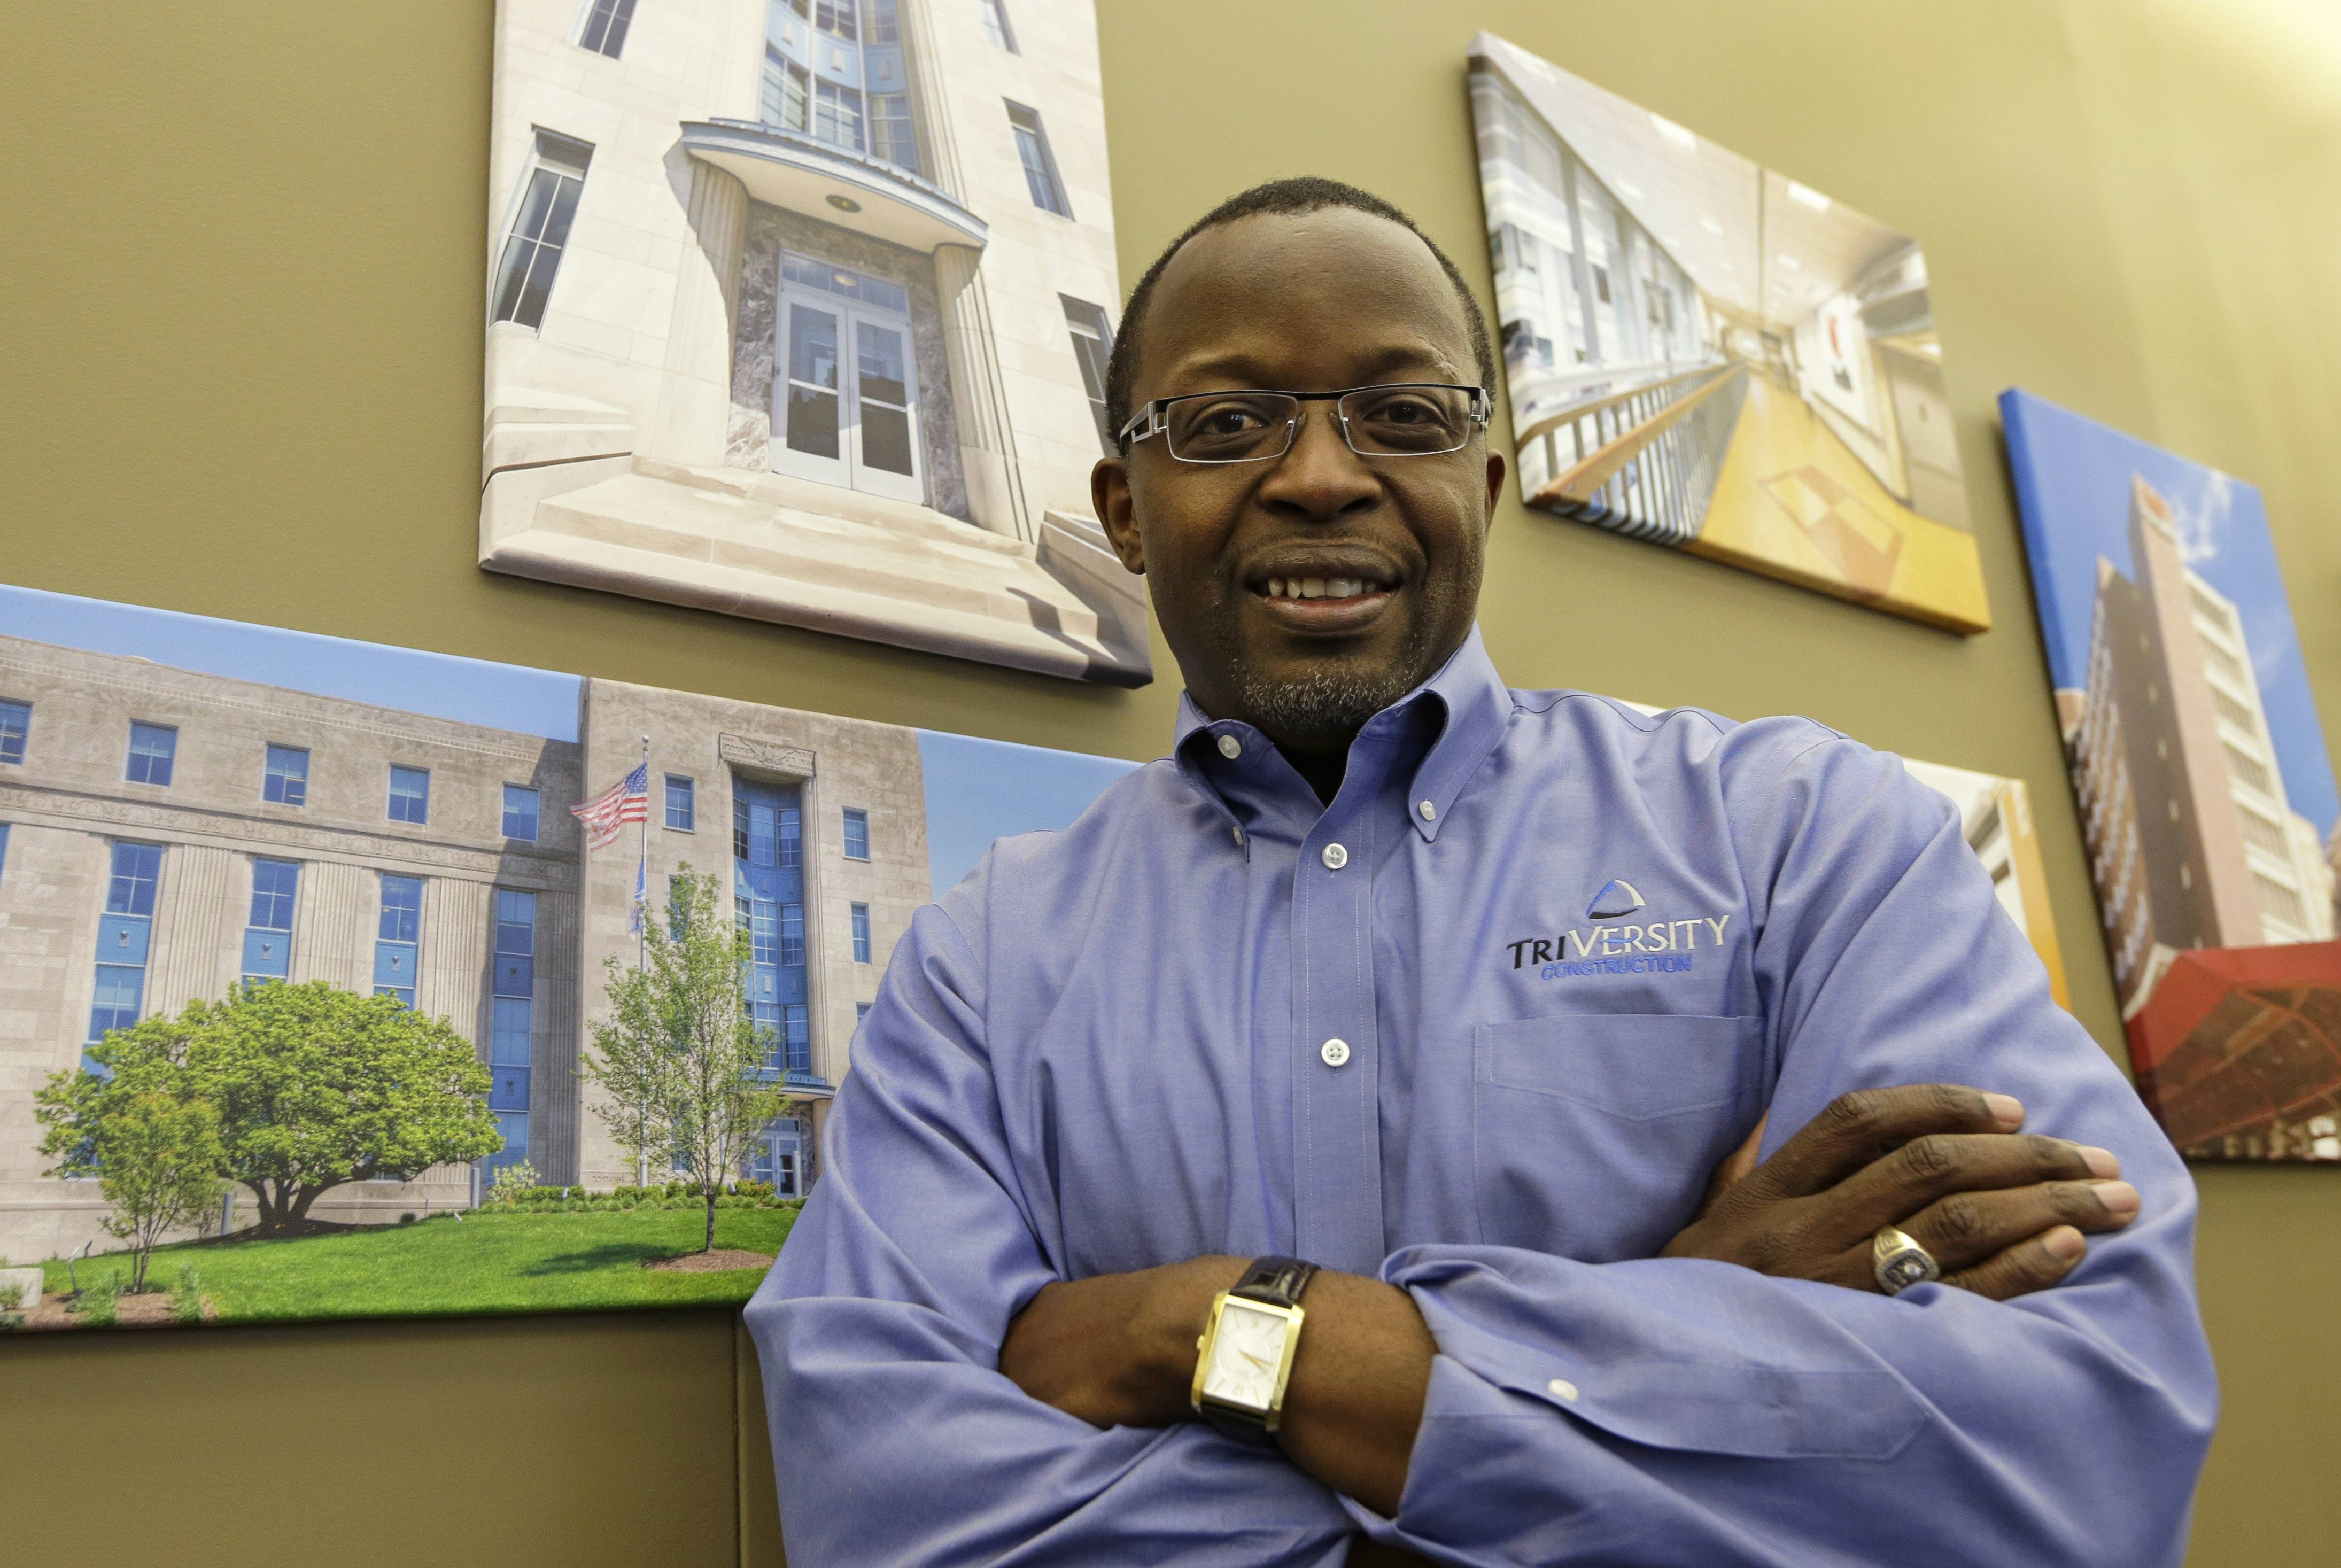 Mel Gravely, president of TriVersity Construction, poses in his office in front of some paintings of work his company has done, Wednesday, April 16, 2014, in Cincinnati. Gravely's company joined a program called a minority business accelerator even before he bought a controlling interest in the Cincinnati-based company in 2006. It helped the company get started and win contracts that have helped TriVersity's revenue double.